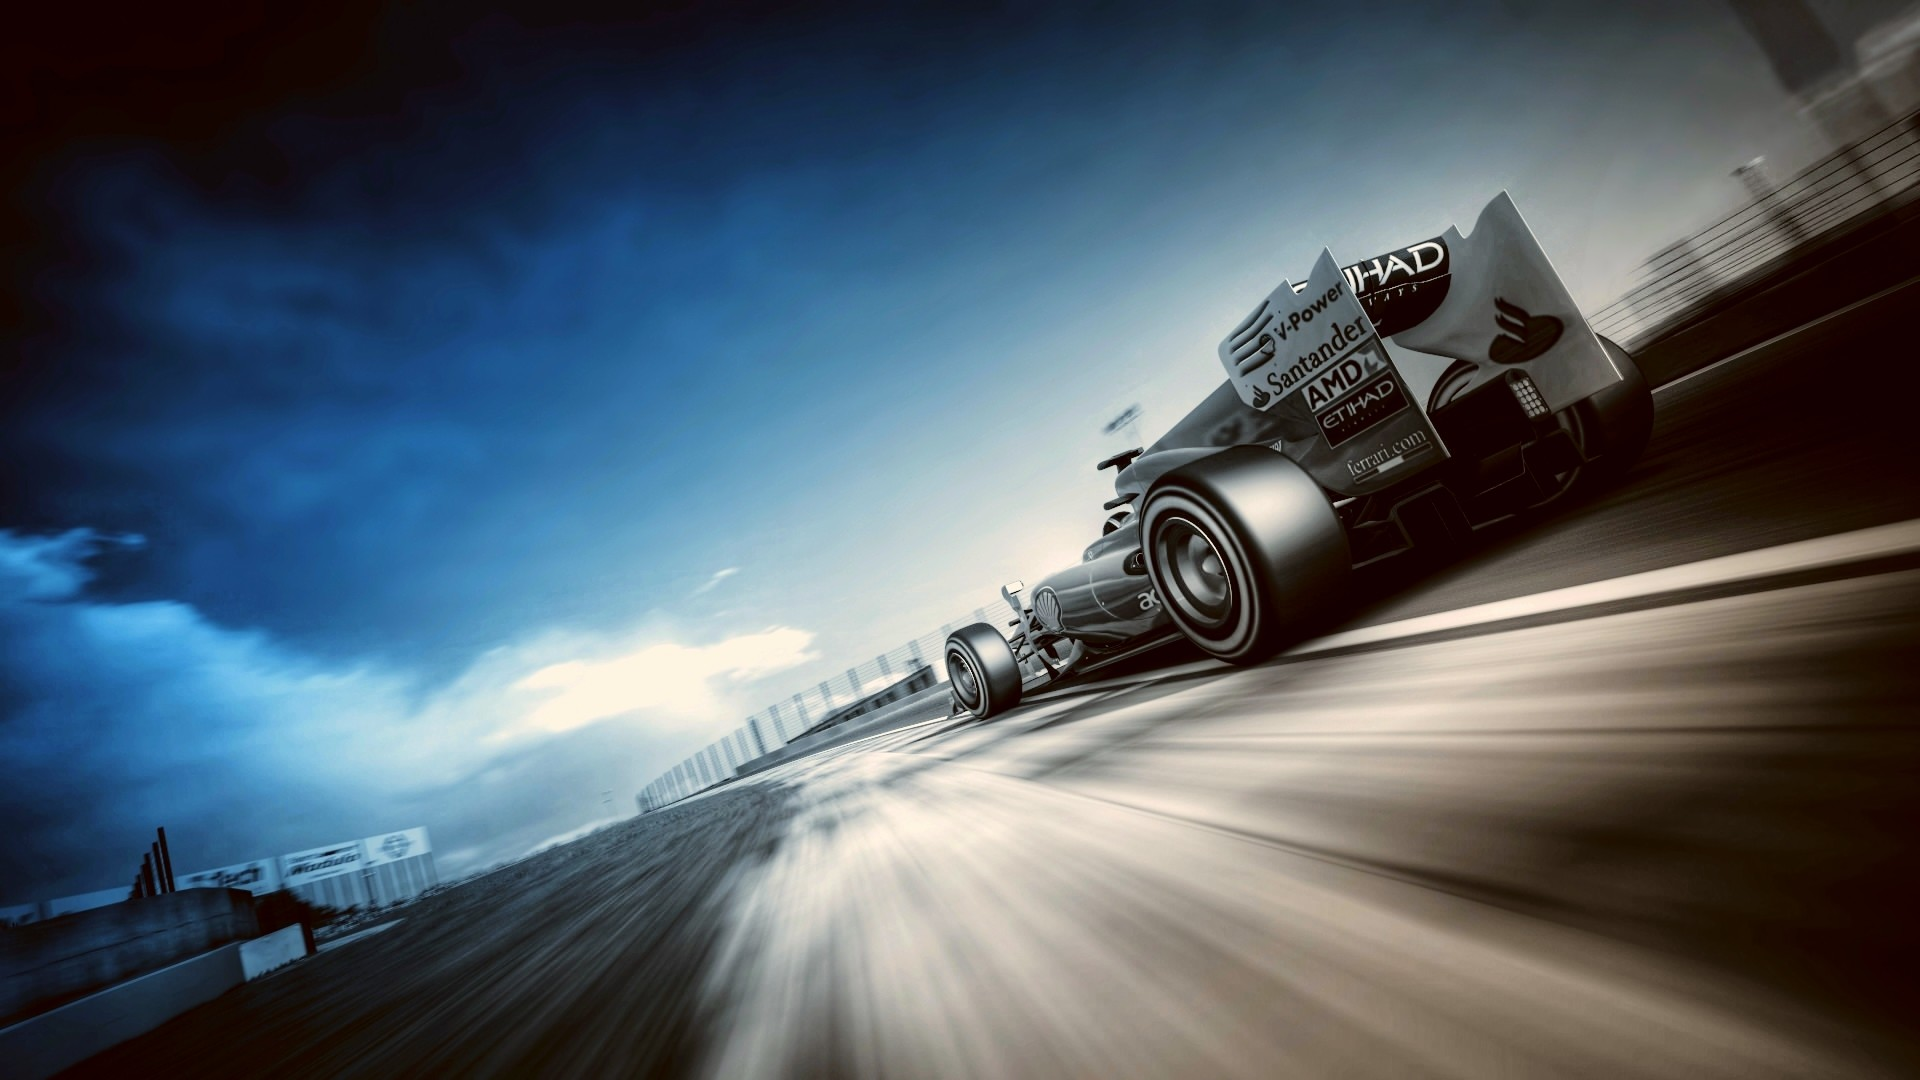 1920x1080 - F1 Wallpapers 14